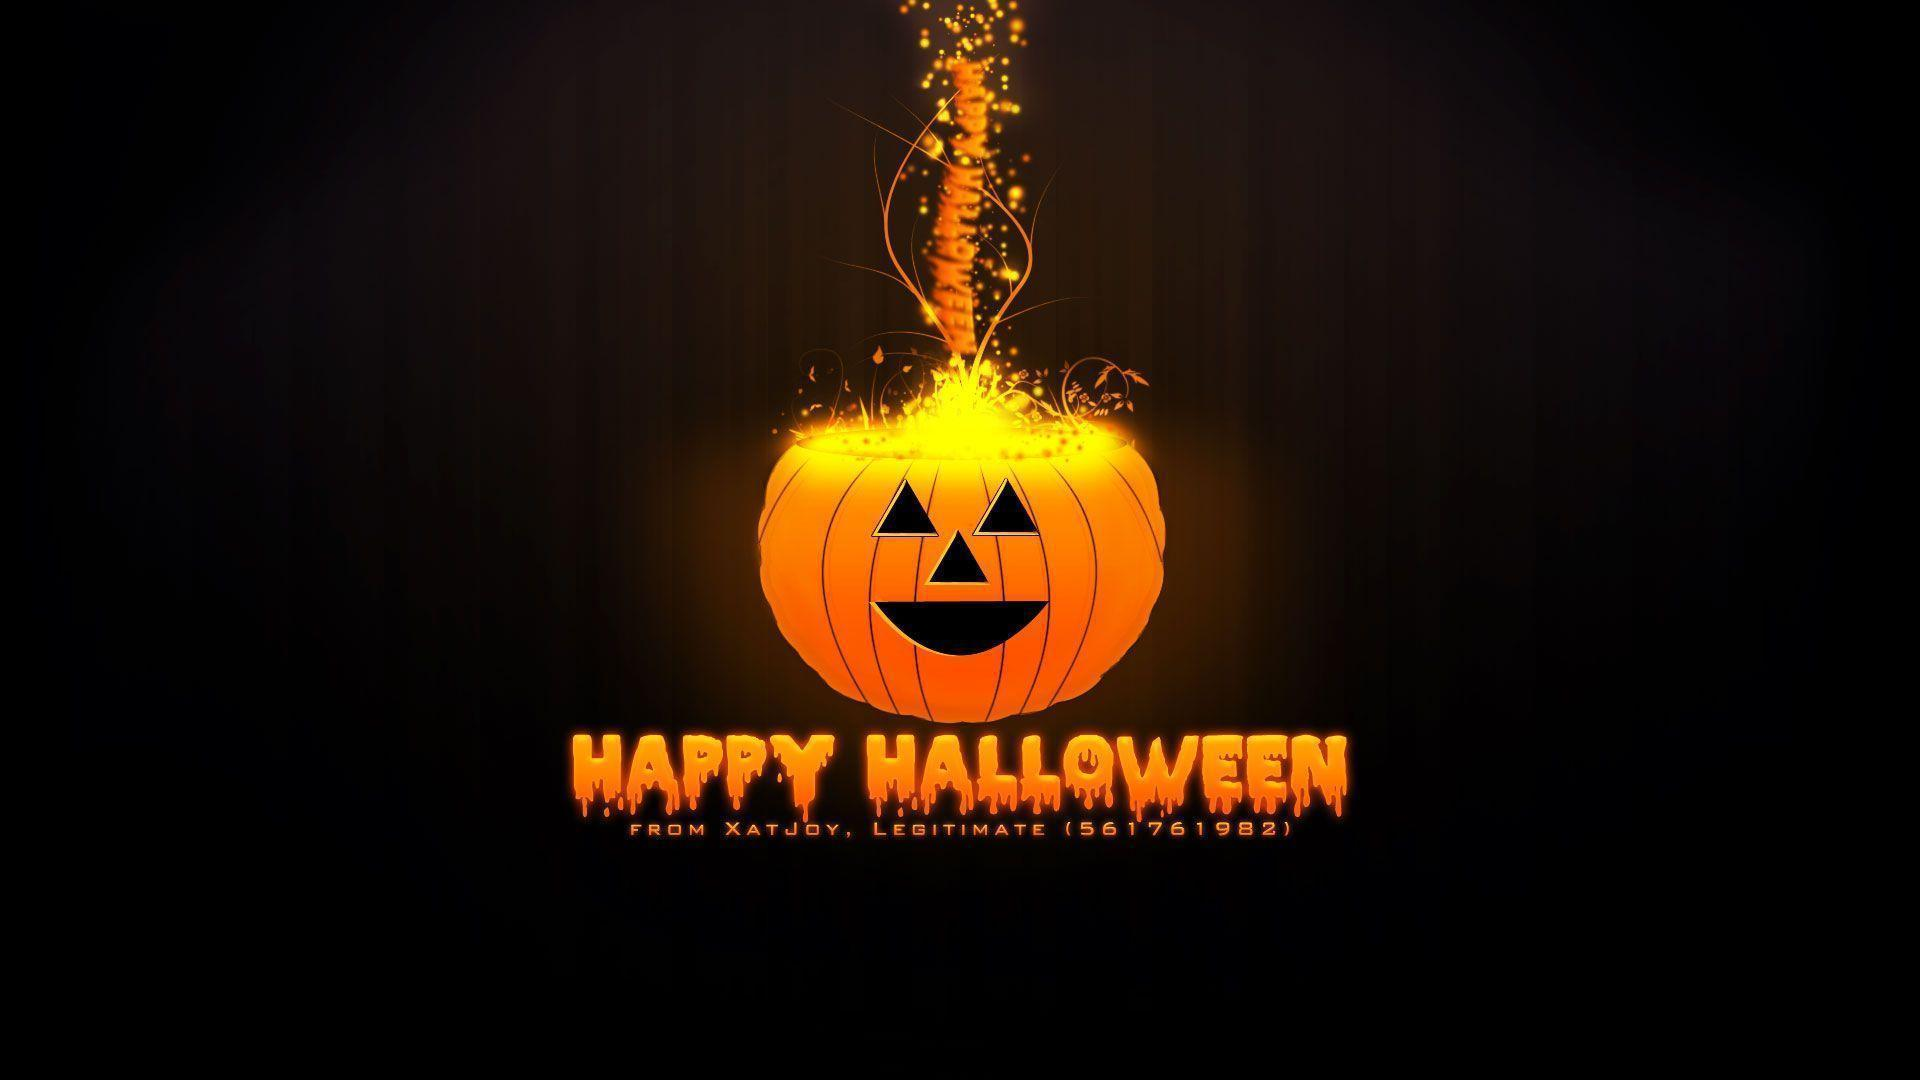 happy halloween wallpapers - photo #11